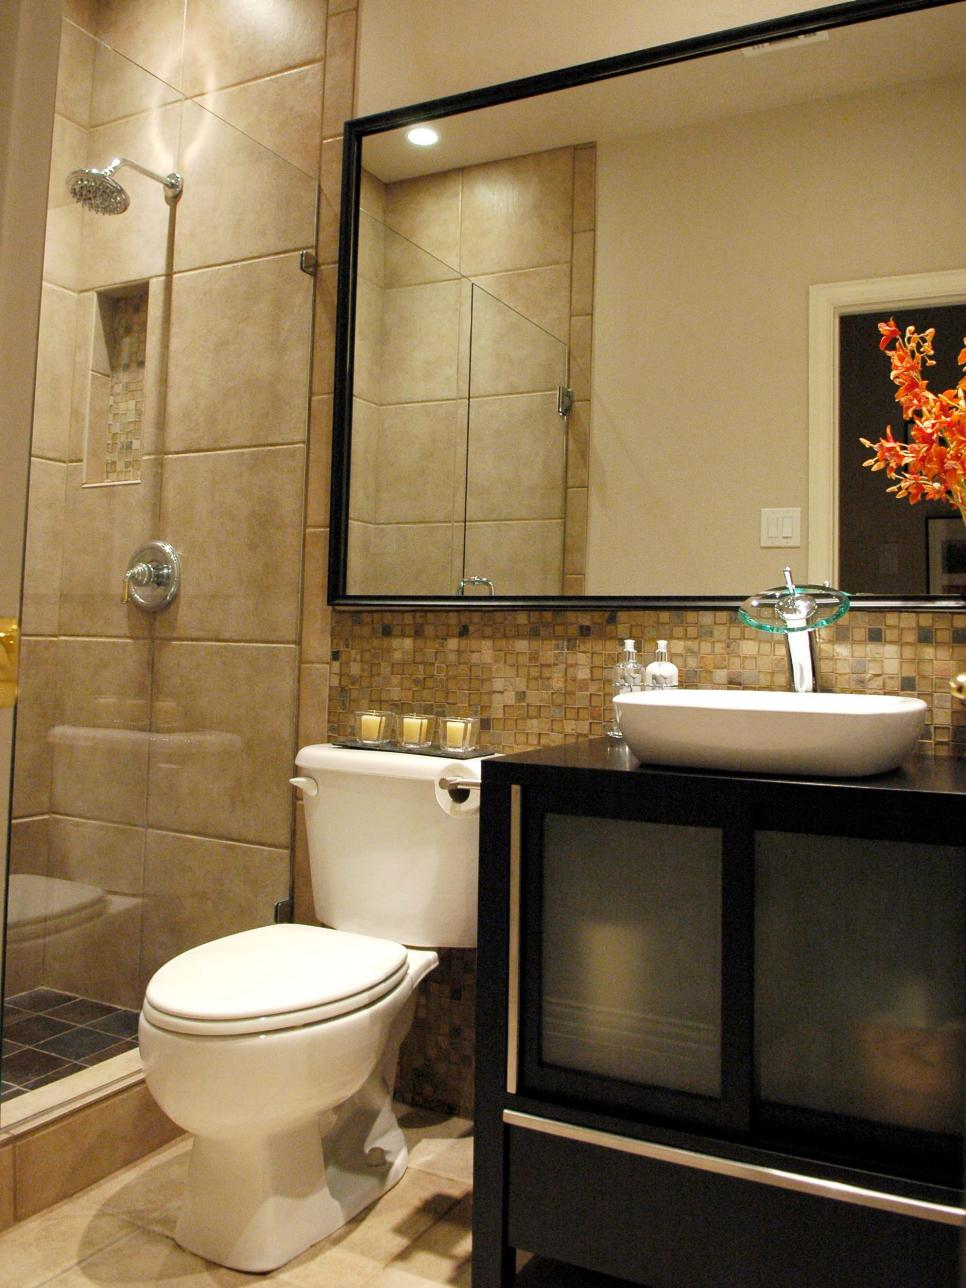 15 ideas for bathroom designs on a budget second wind for 2nd bathroom ideas